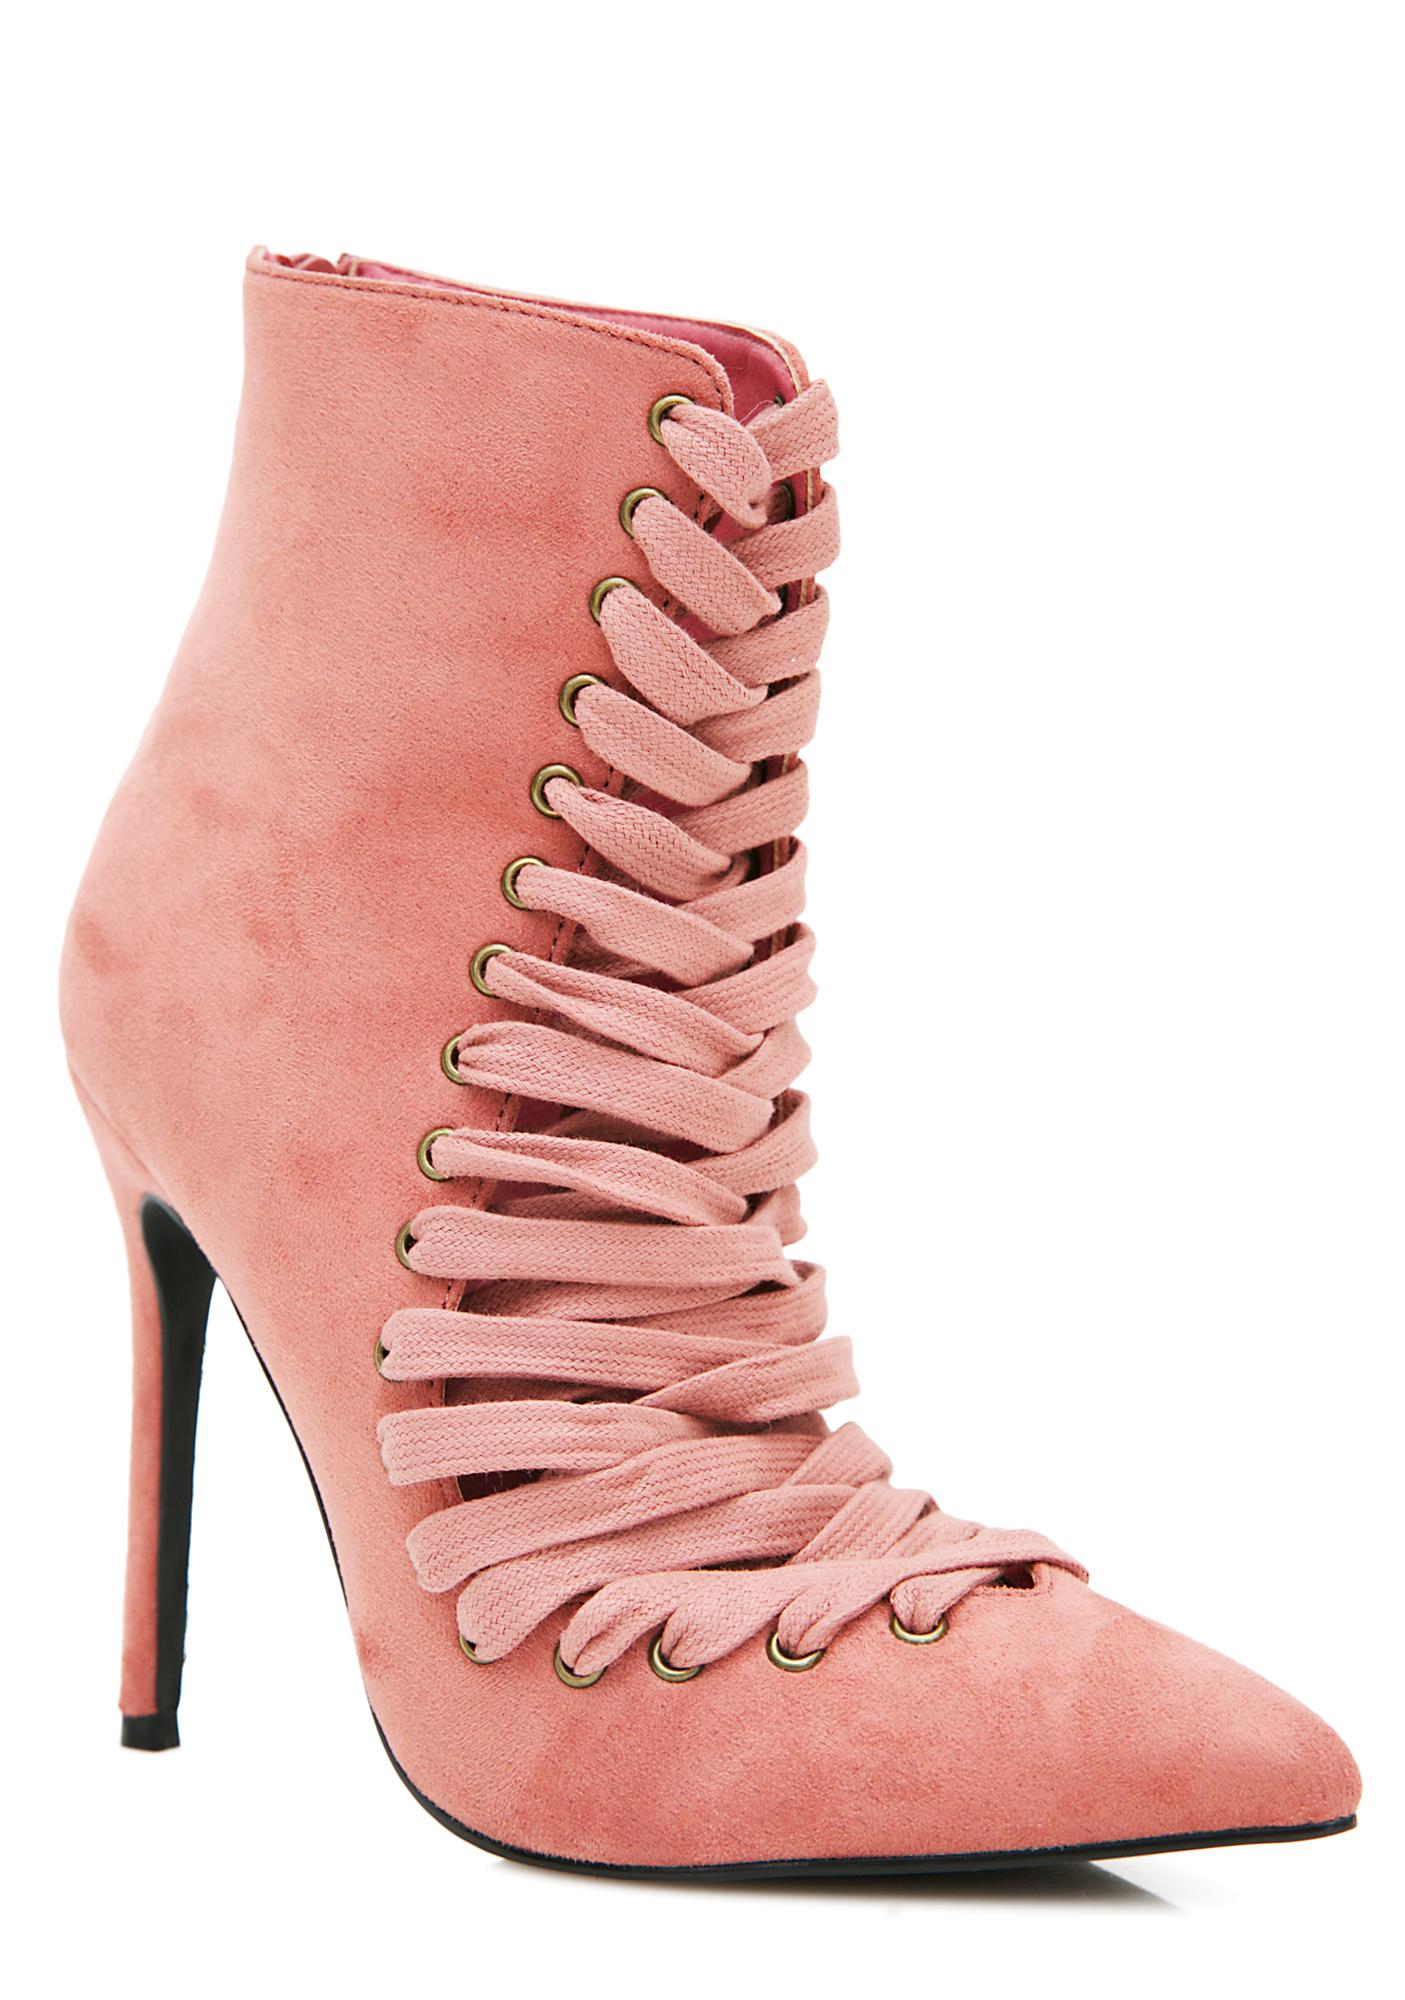 Privileged Vamp Lace-Up Stiletto Booties